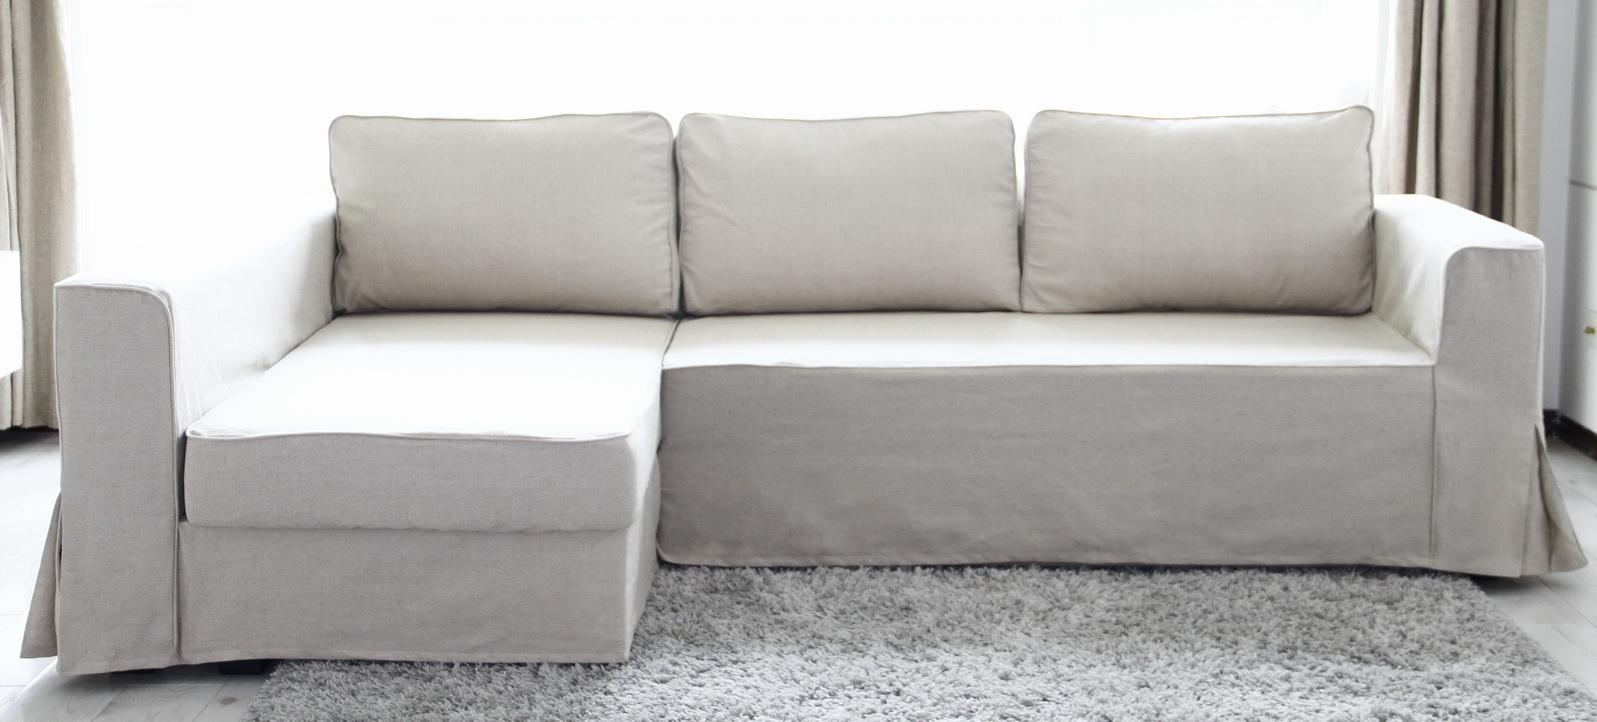 About The Ikea Sleeper Sofa – S3Net – Sectional Sofas Sale : S3Net Throughout Sleeper Sofa Sectional Ikea (View 13 of 20)